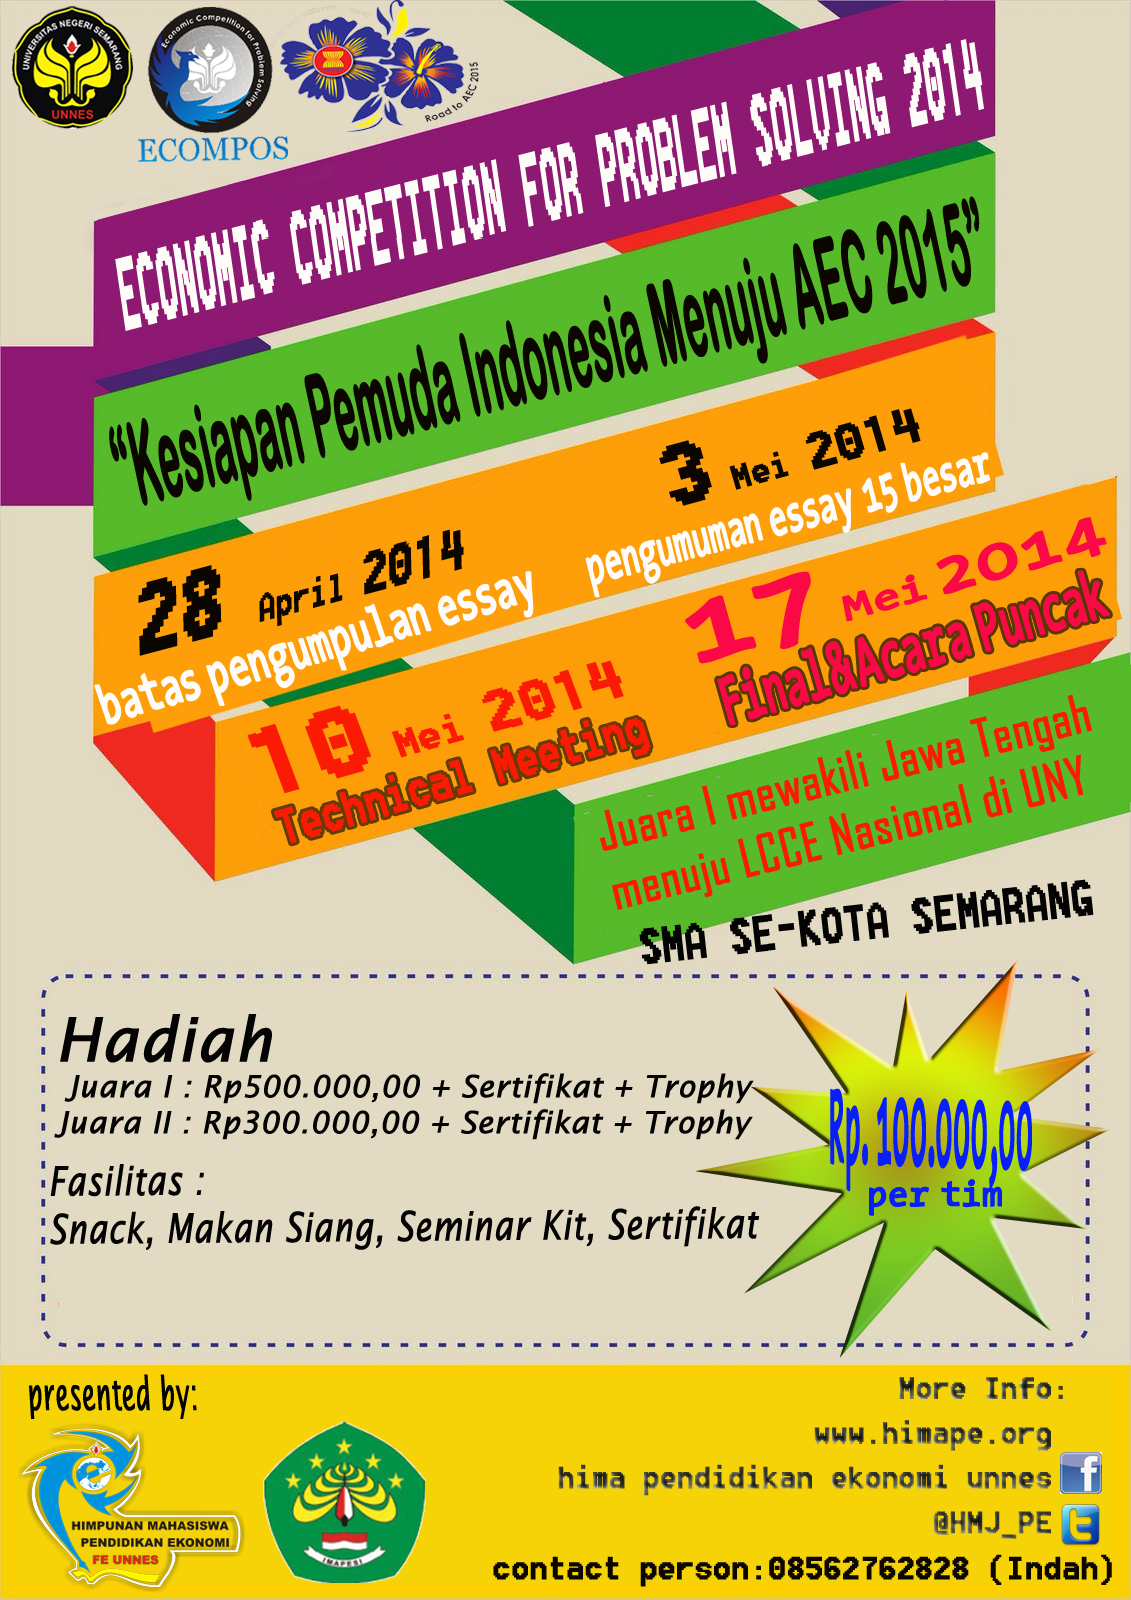 Let's Join Us! Economics Competition For Problem Solving (ECOMPOS) - Diundur